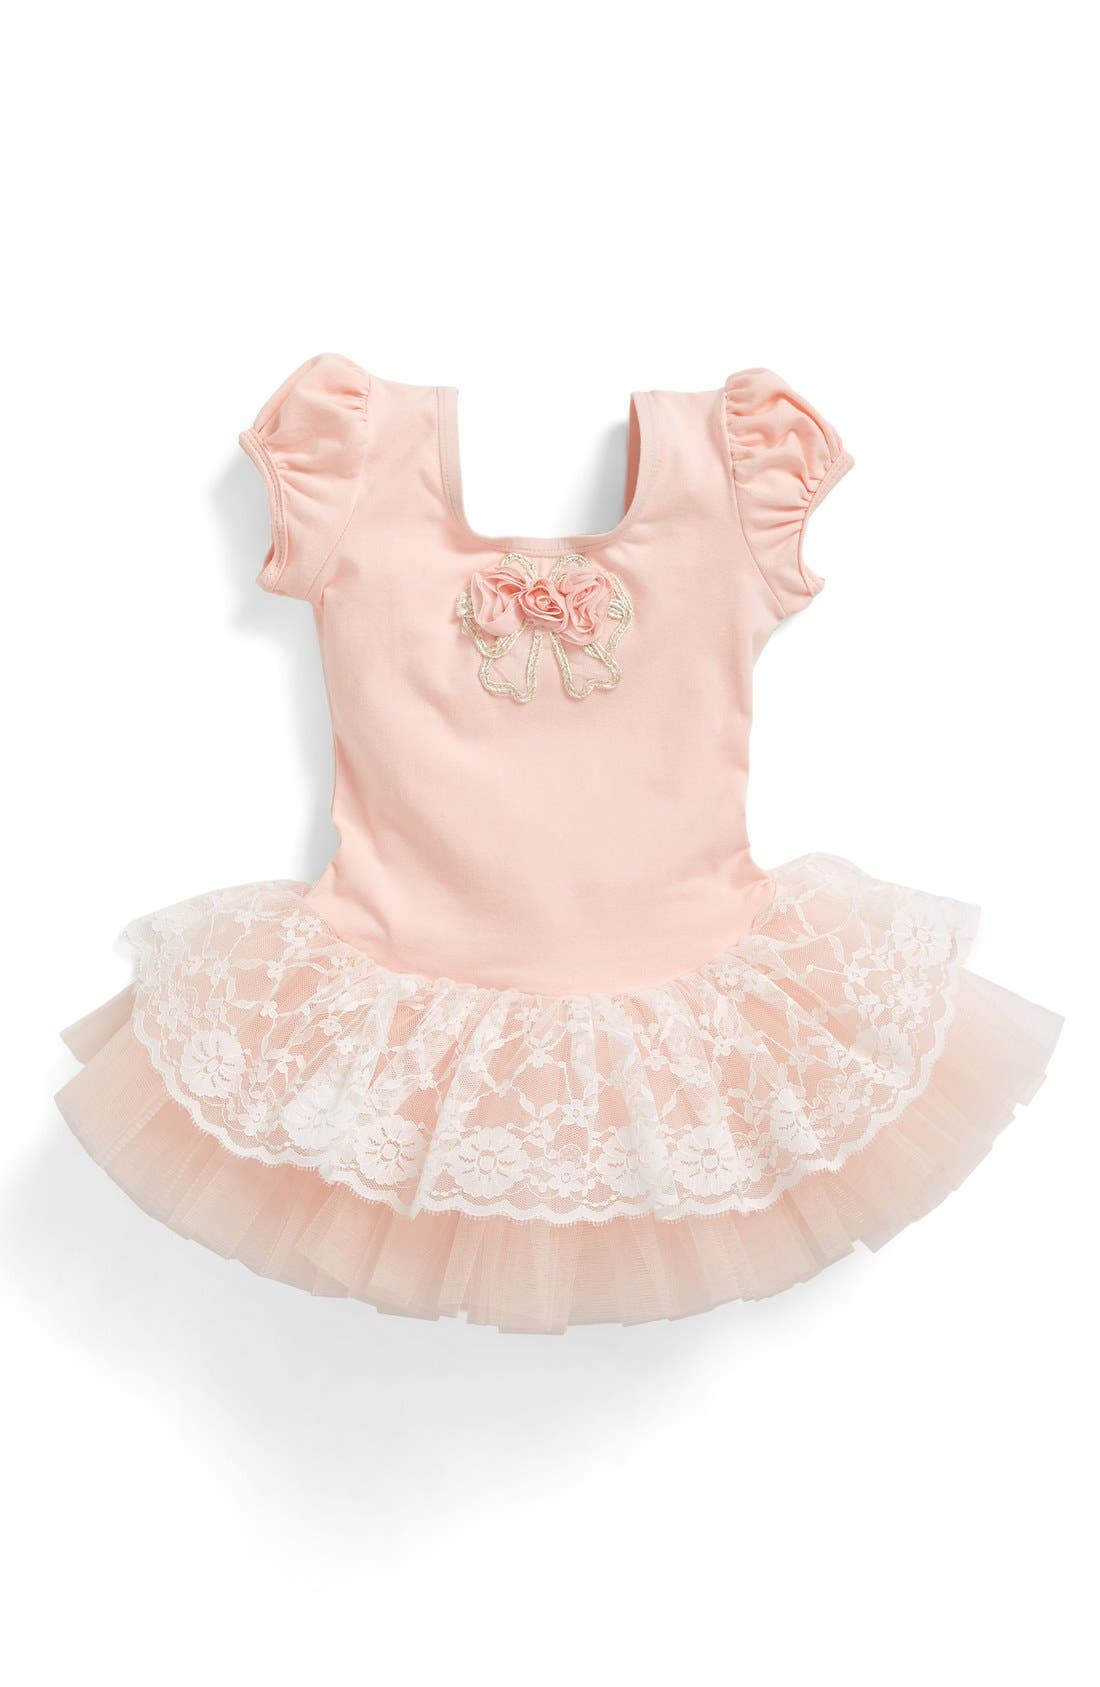 Alternate Image 1 Selected - Popatu Floral Lace Tutu Dress (Baby Girls)